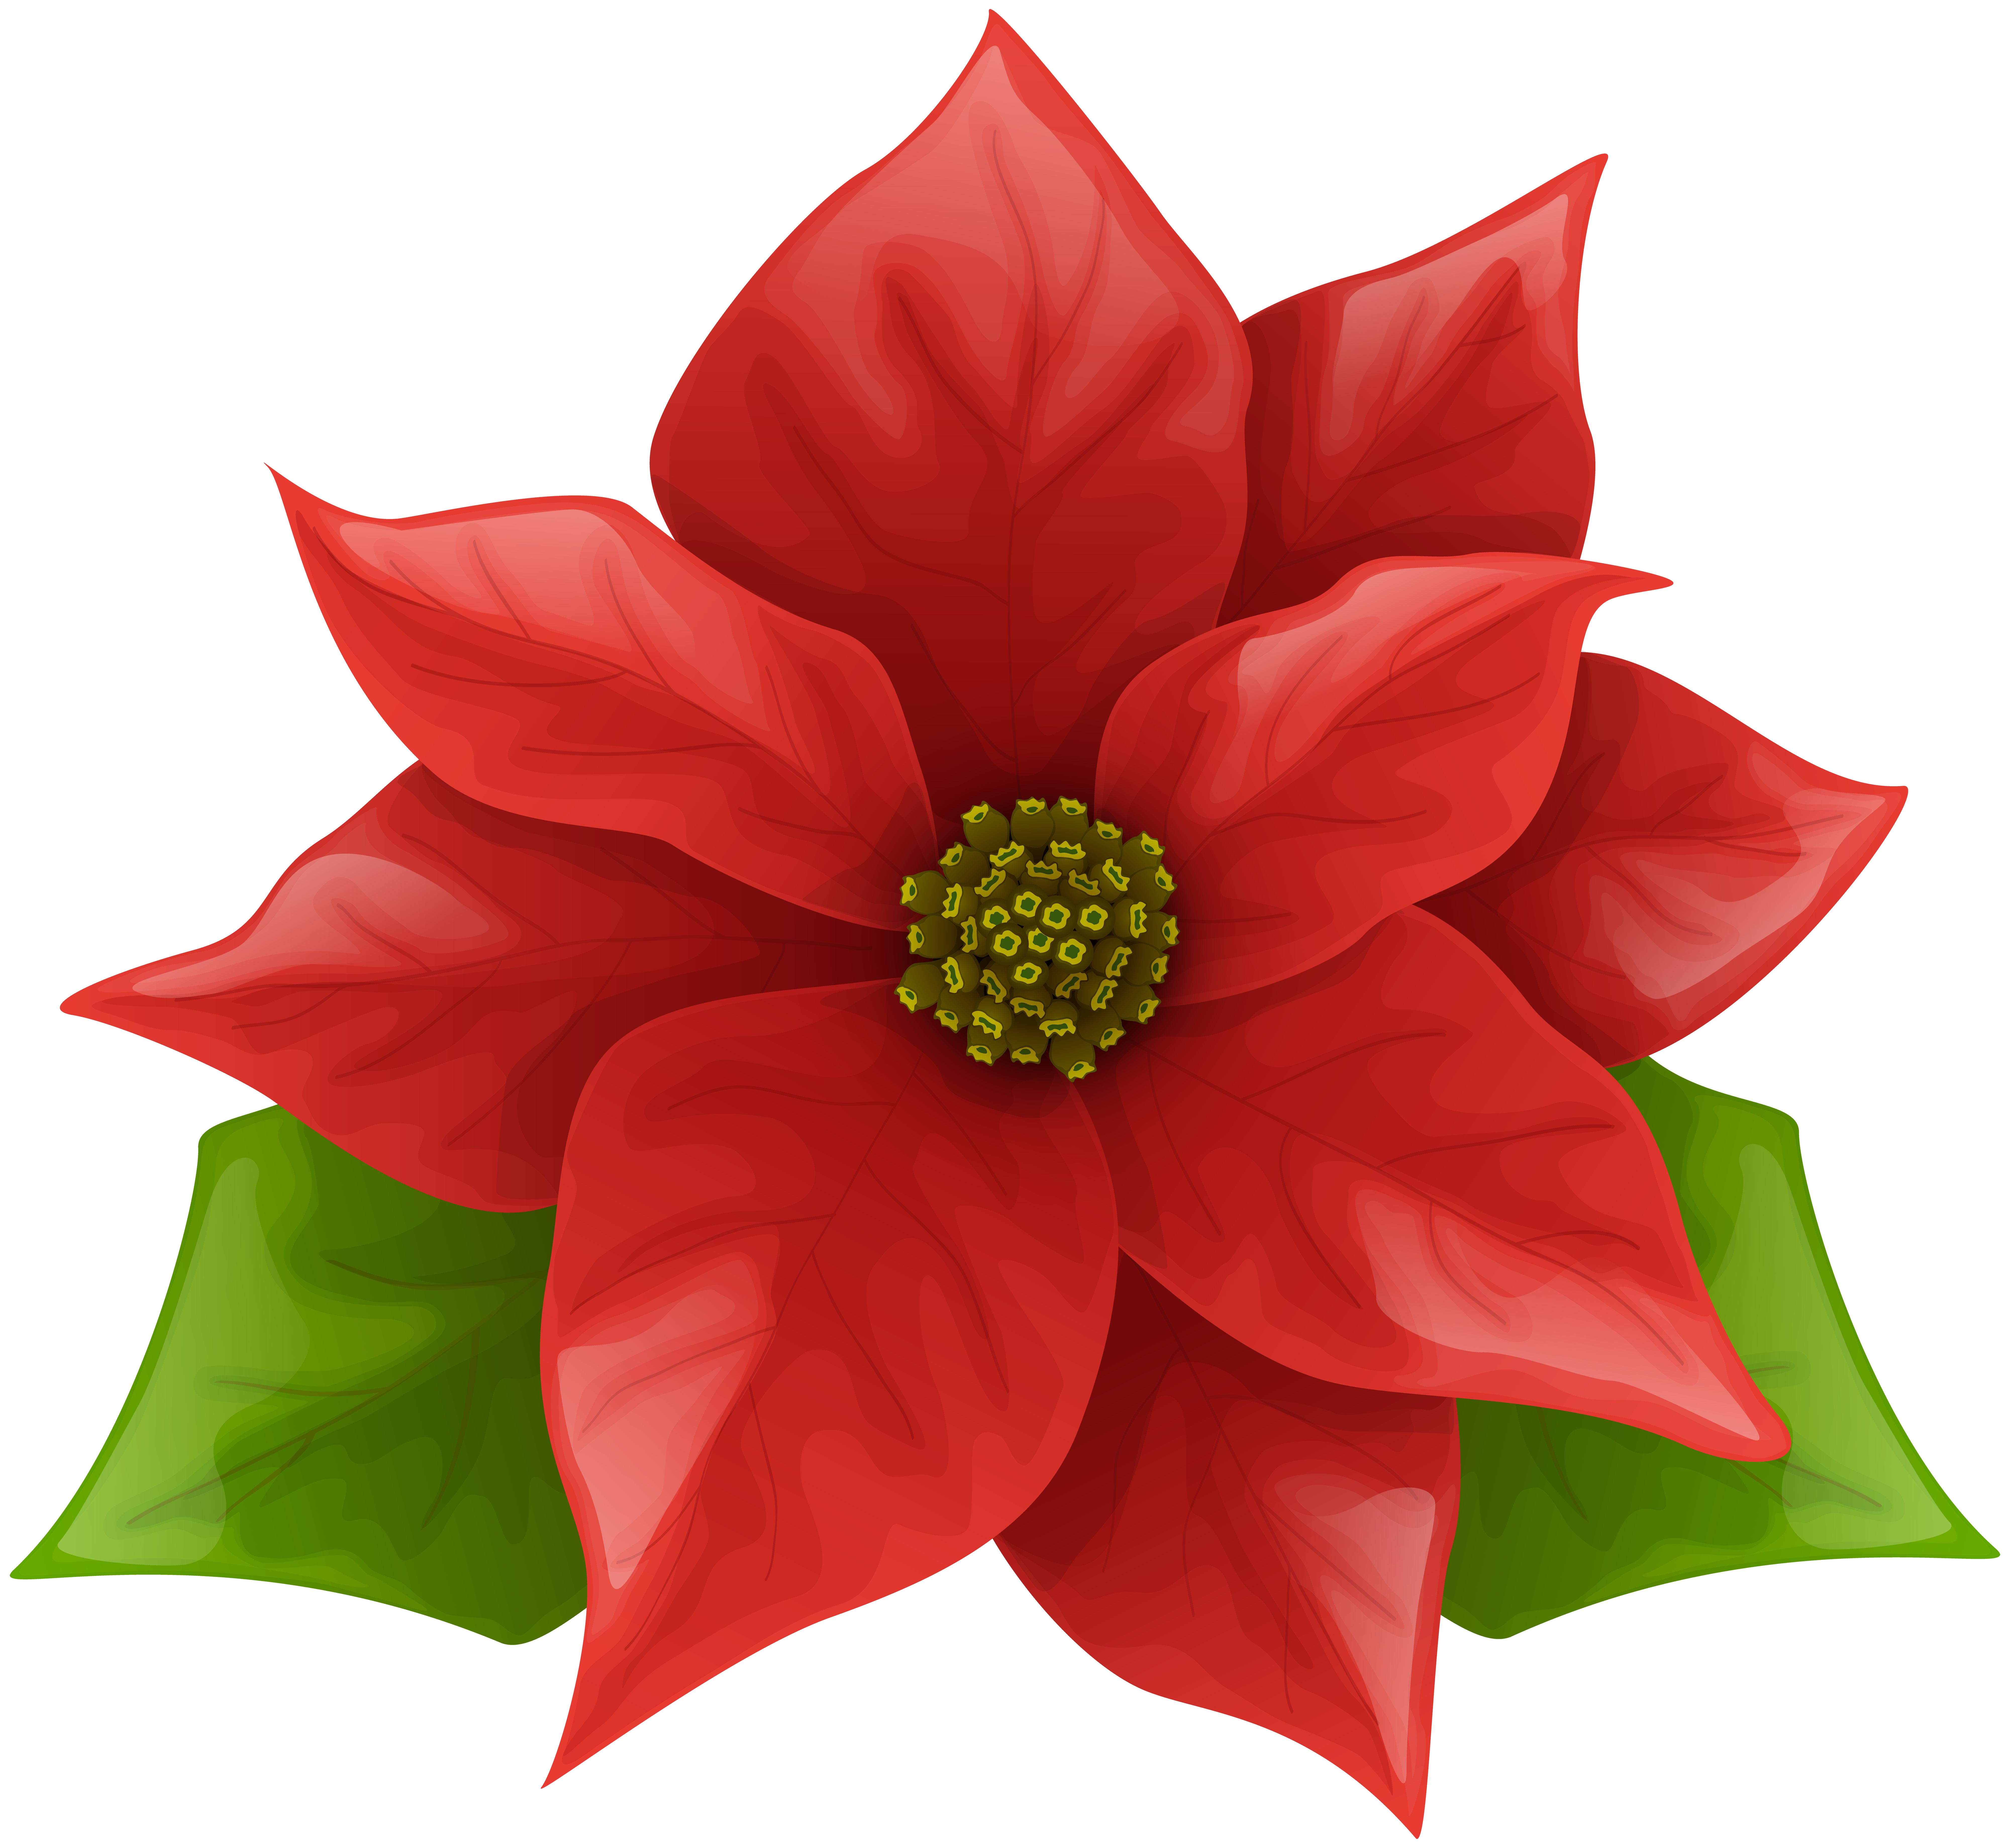 Poinsettia clipart. Christmas png clip art